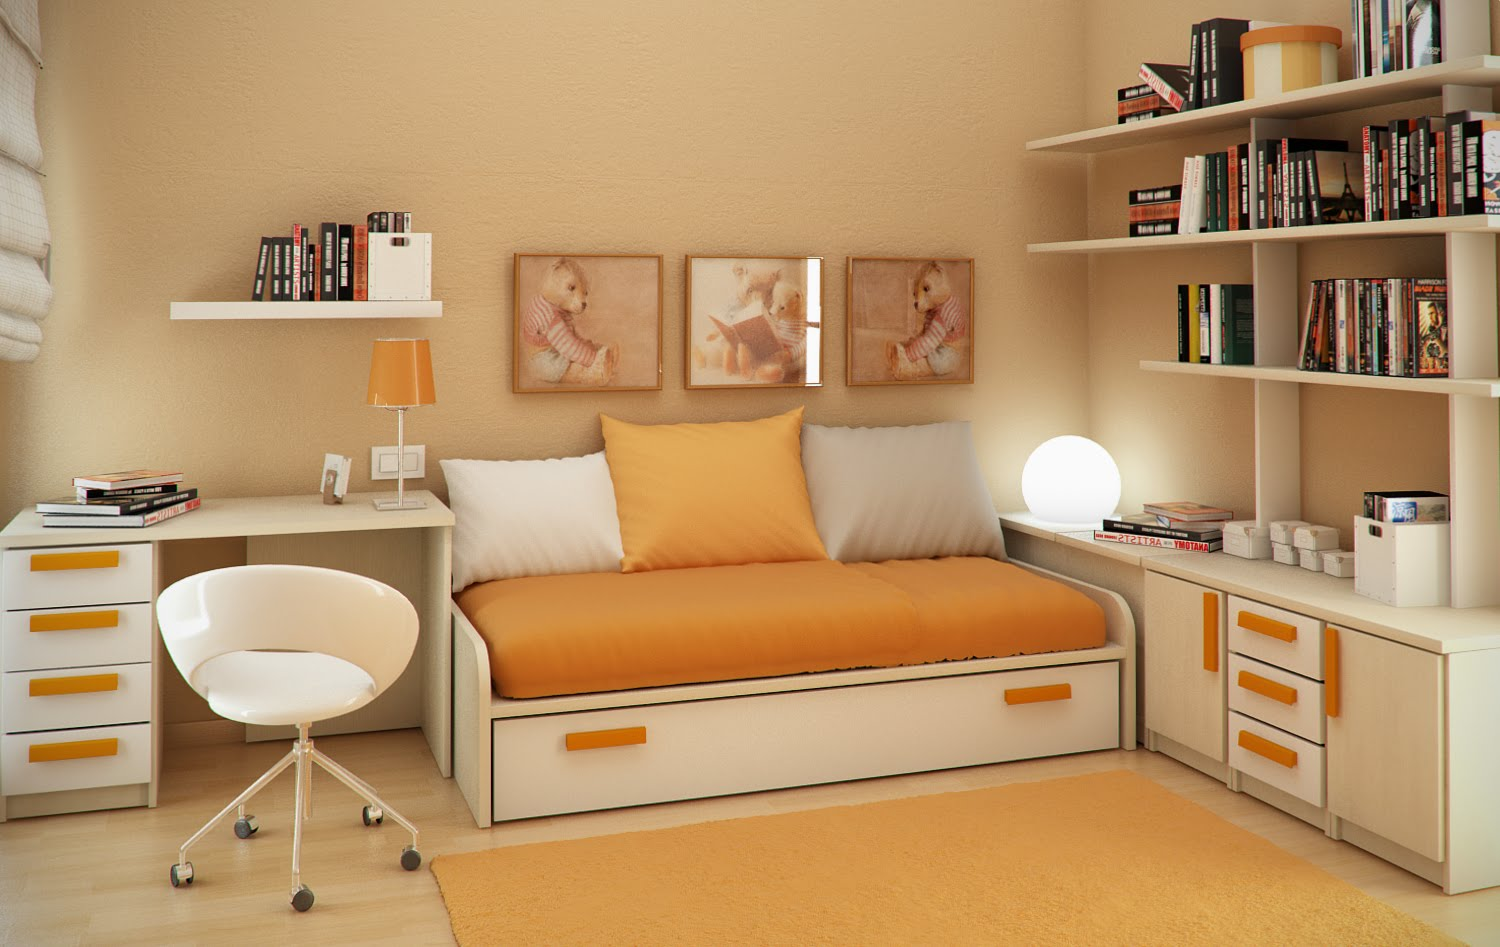 Stunning Small Bedroom Interior Design Ideas 1500 x 947 · 159 kB · jpeg